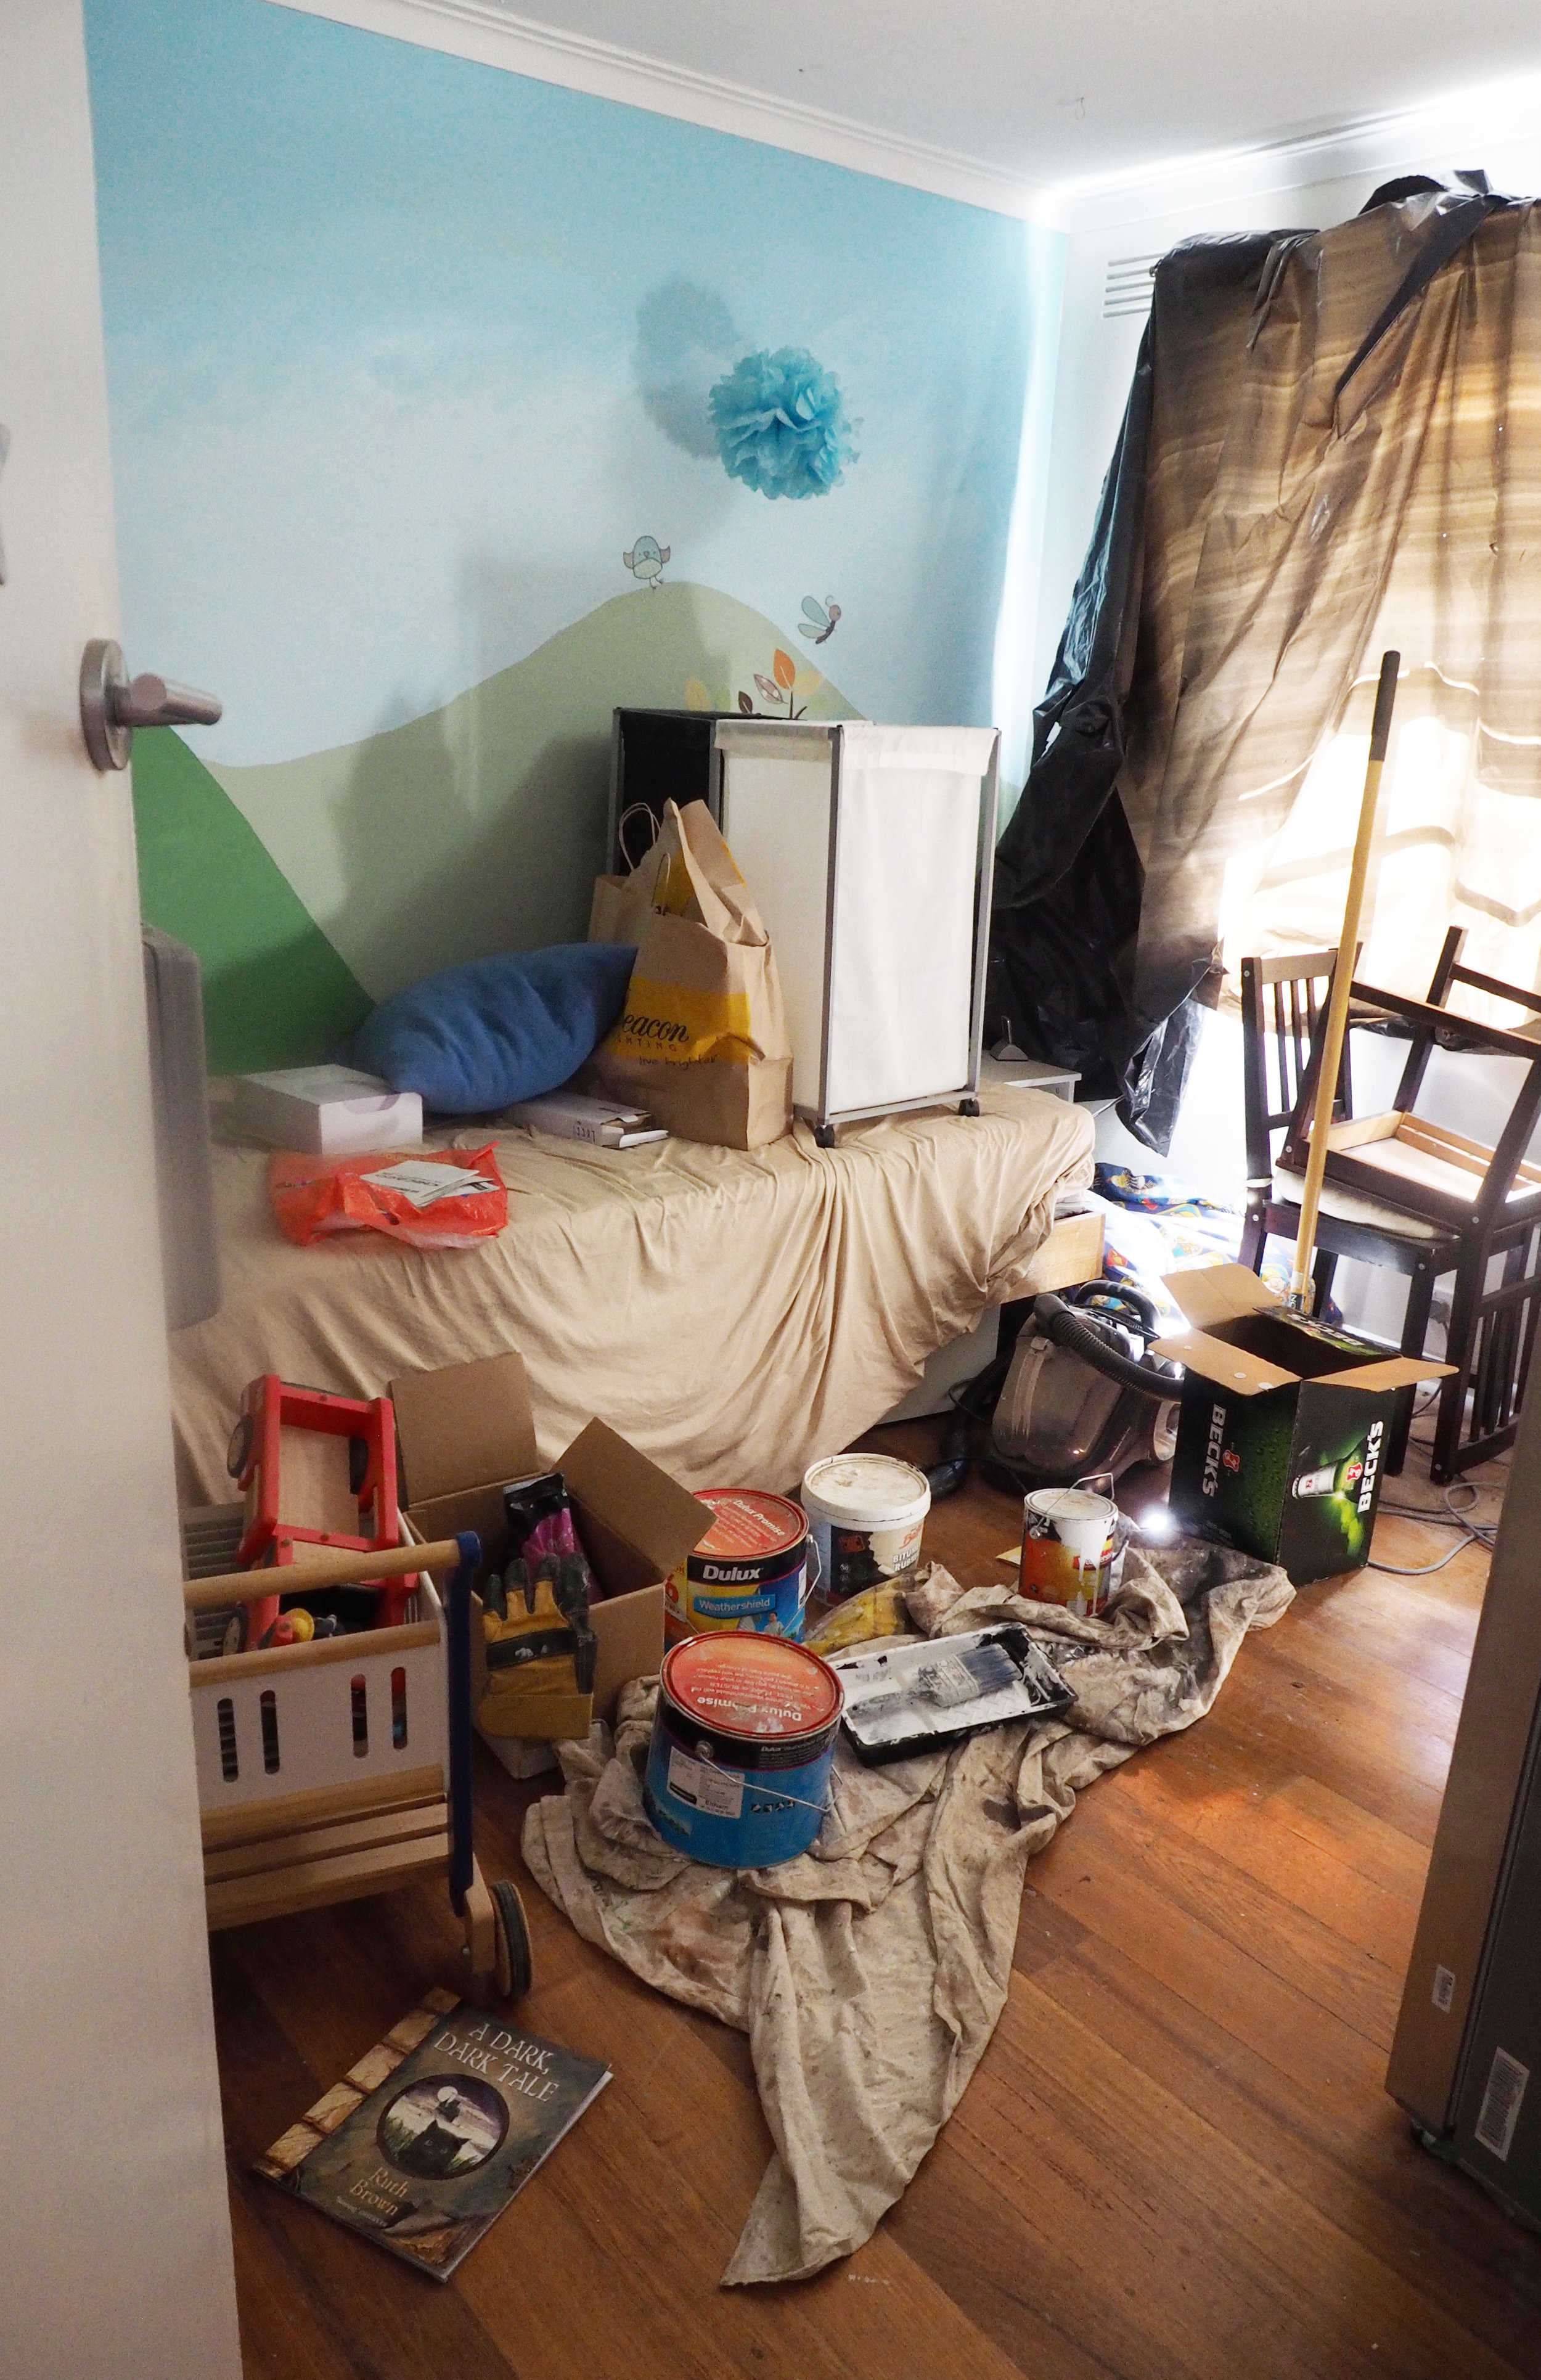 Renovation realities with mess in every room - The Organised You